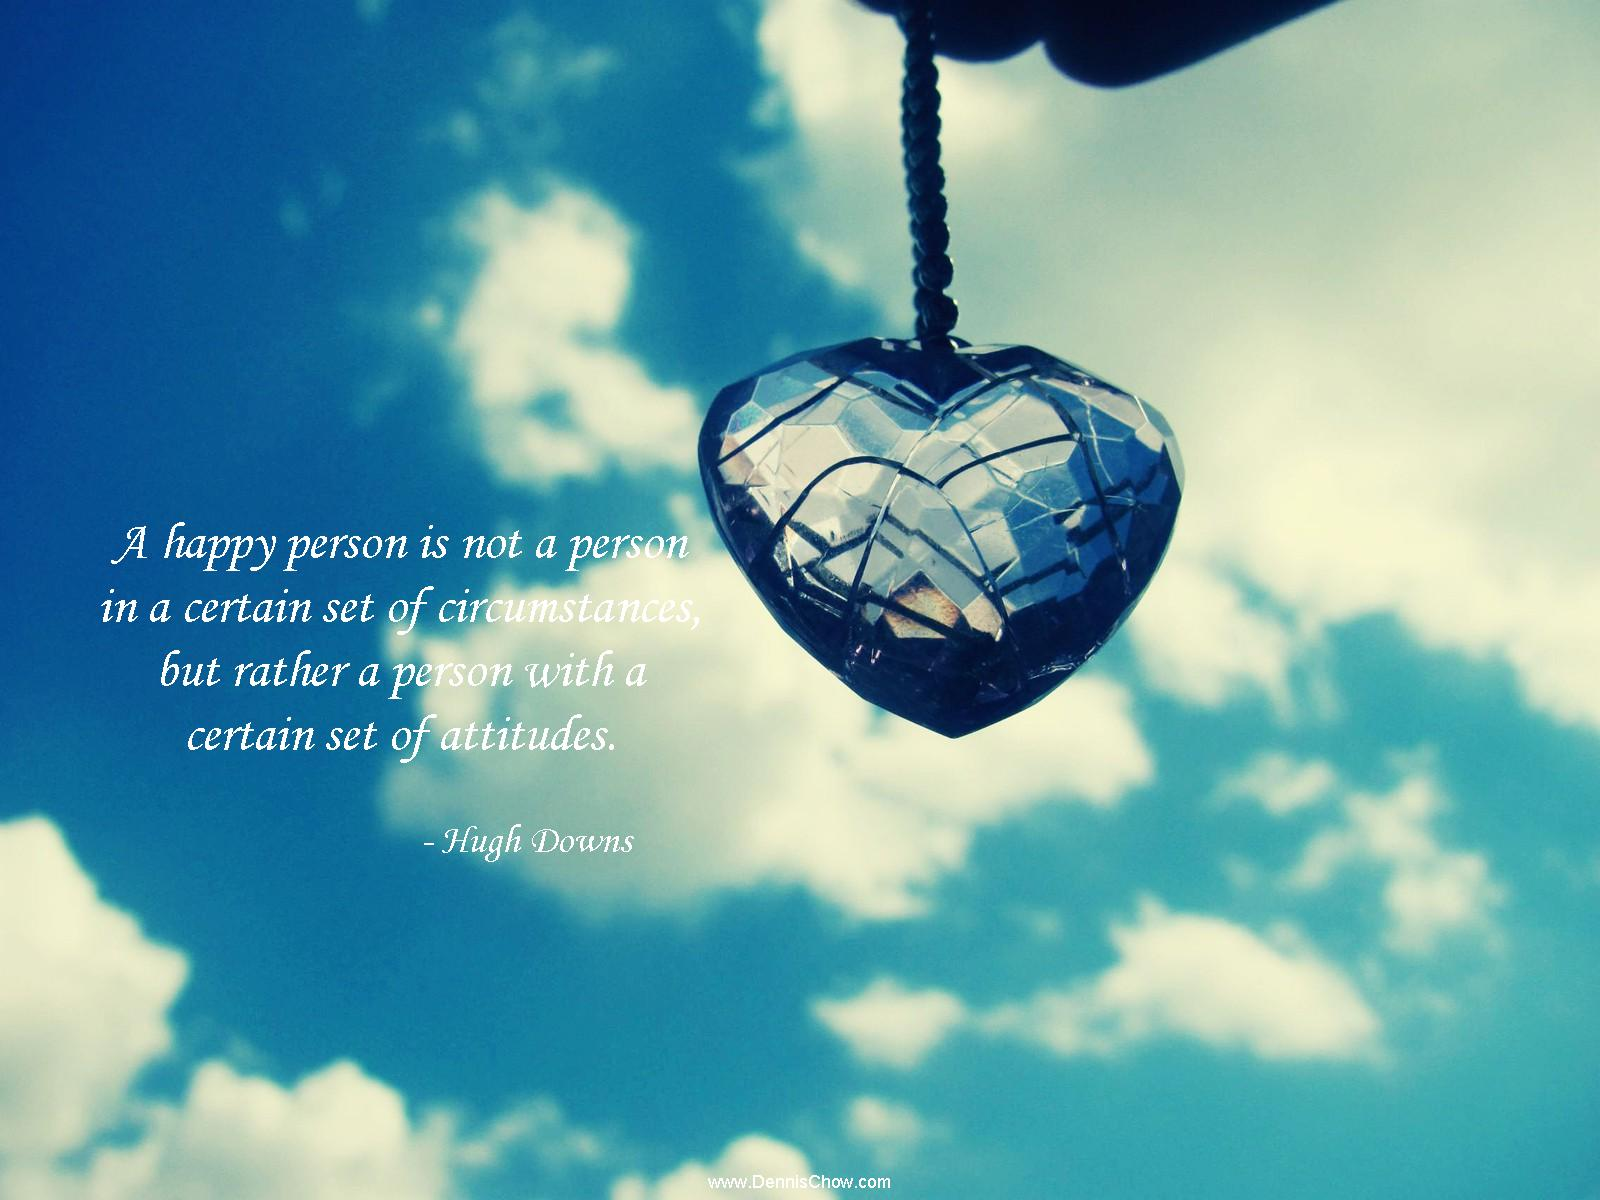 Quotes About Happy Person A Happy Person Is Not A Person In A Certain Set Of Circumstances